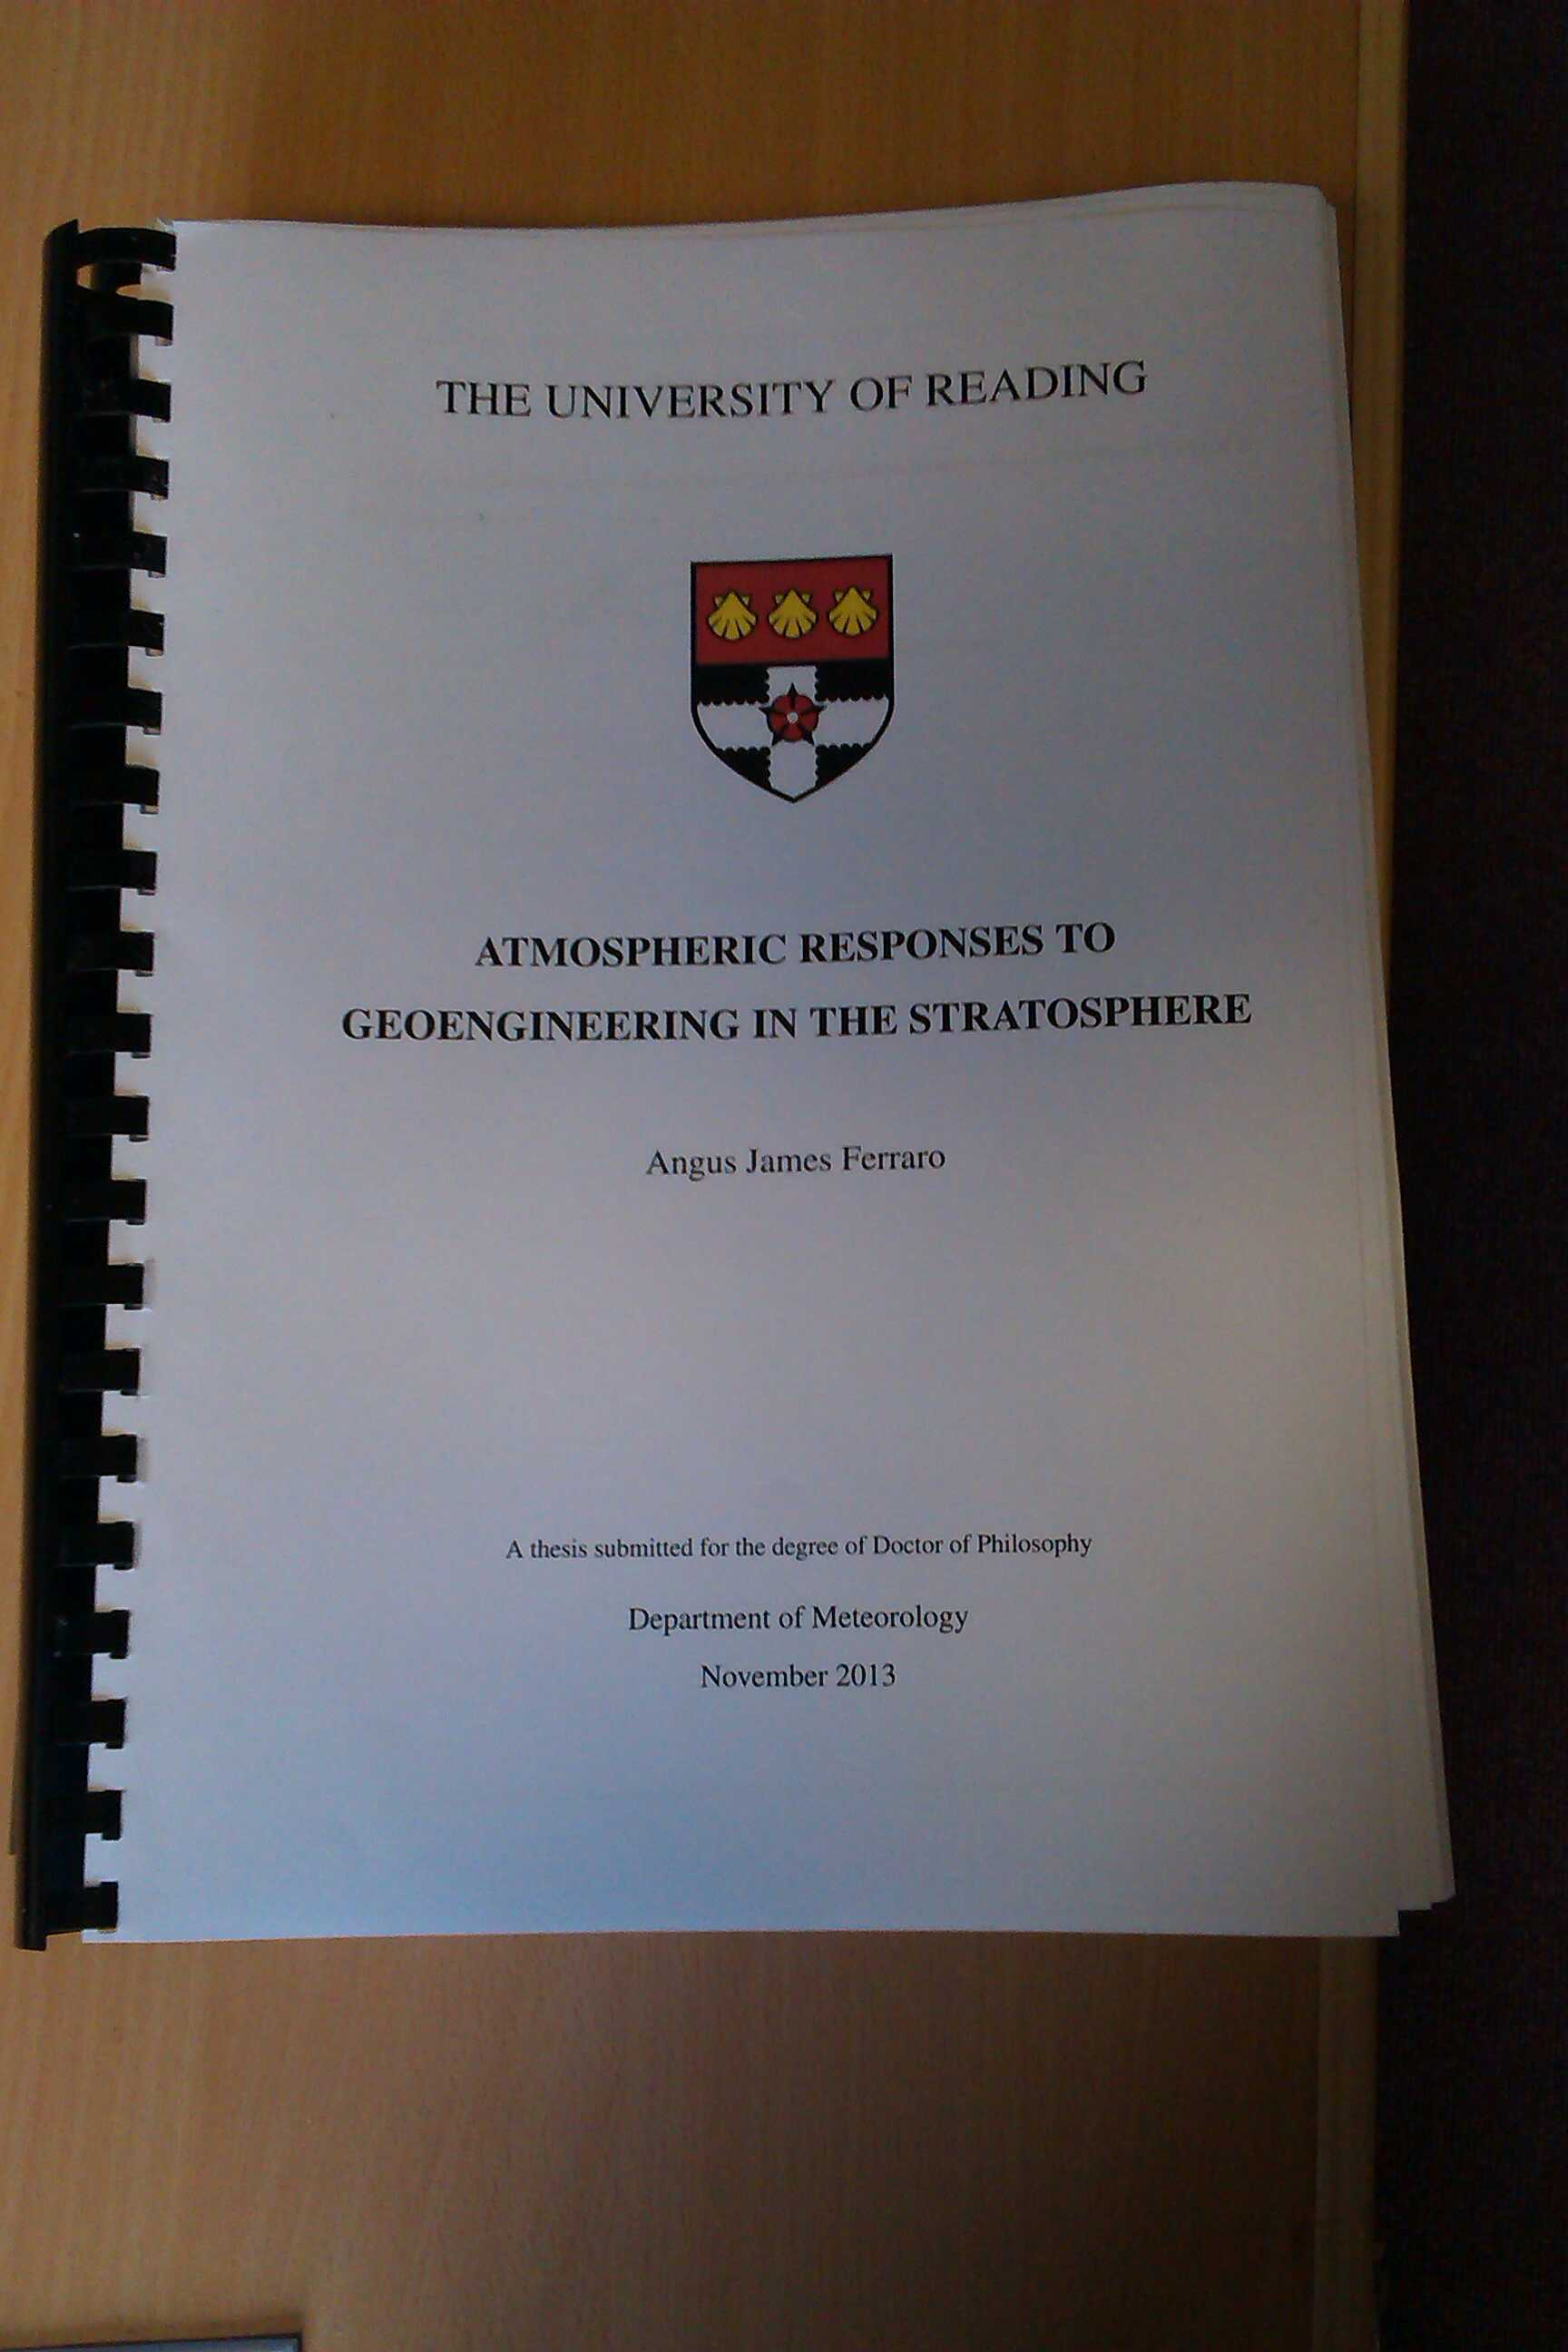 sample front page of thesis